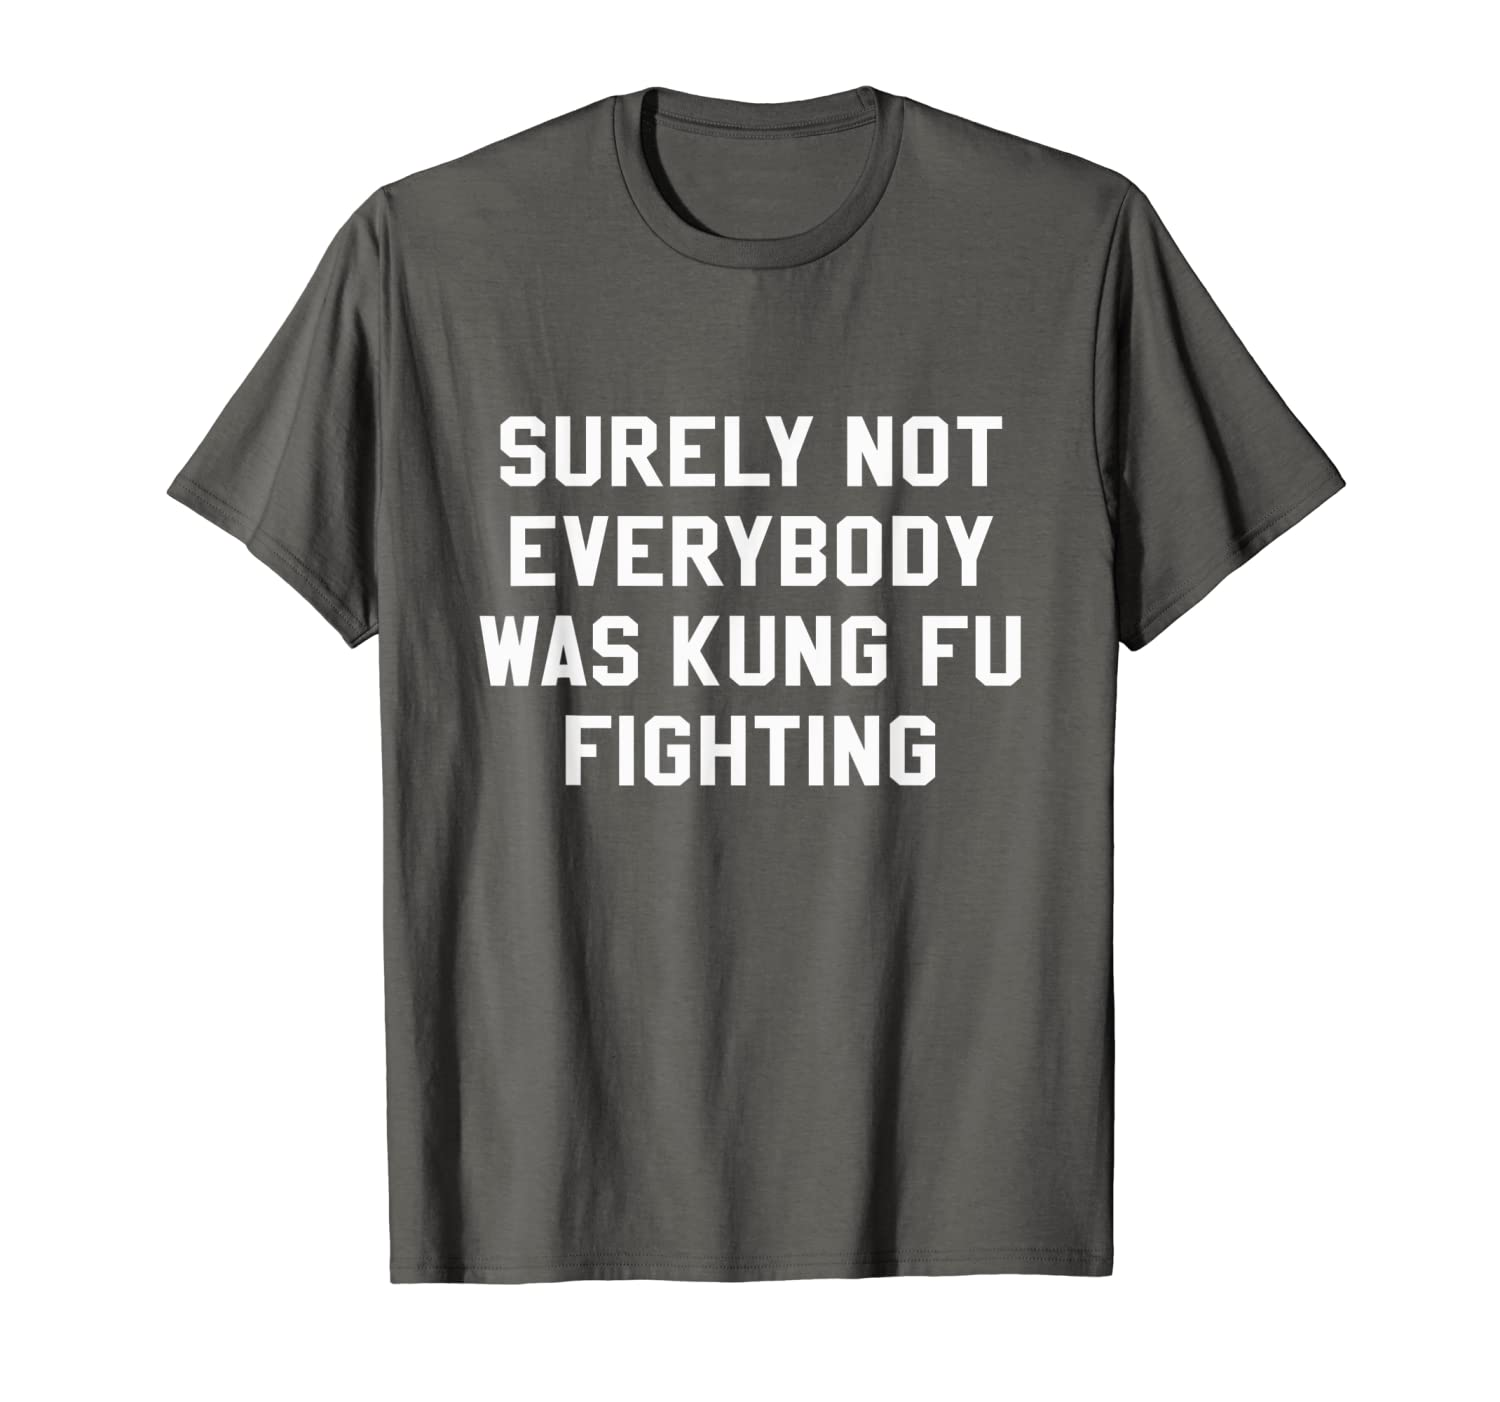 c554bb8ef Amazon.com: Surely Not Everybody Was Kung Fu Fighting Sarcastic T Shirt:  Clothing